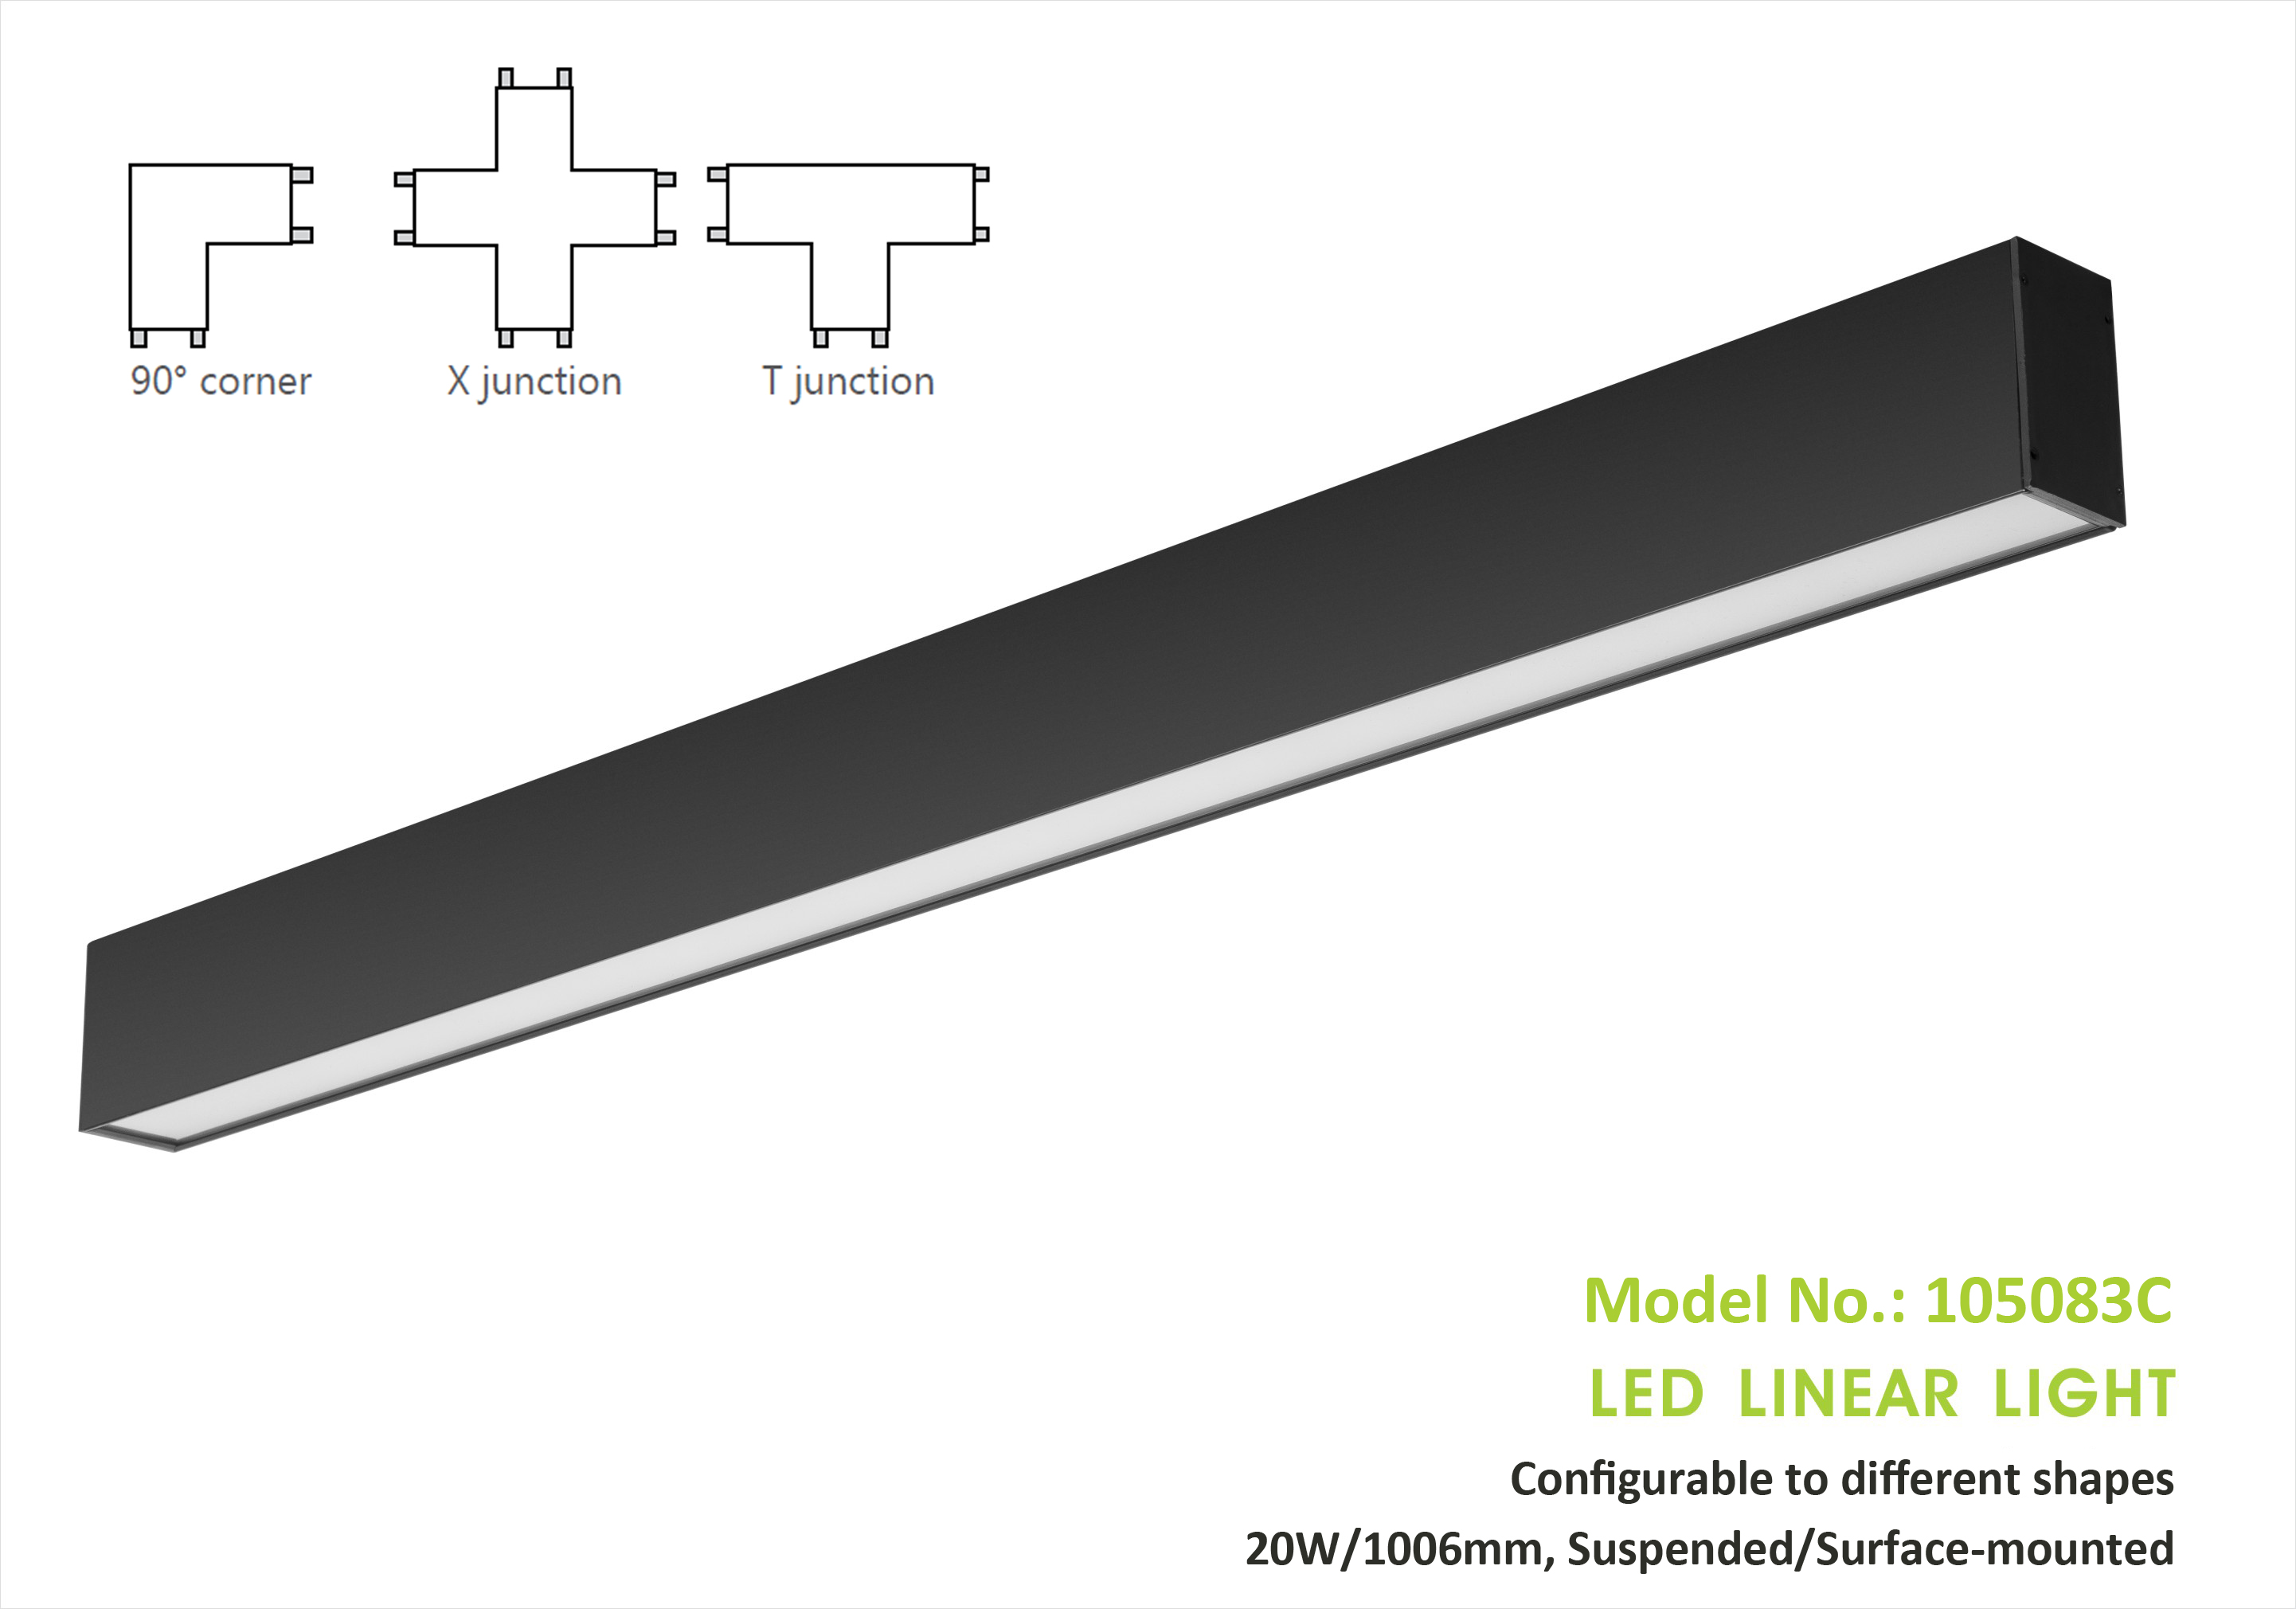 Configurable Linear Light 105083, 20W/1006mm